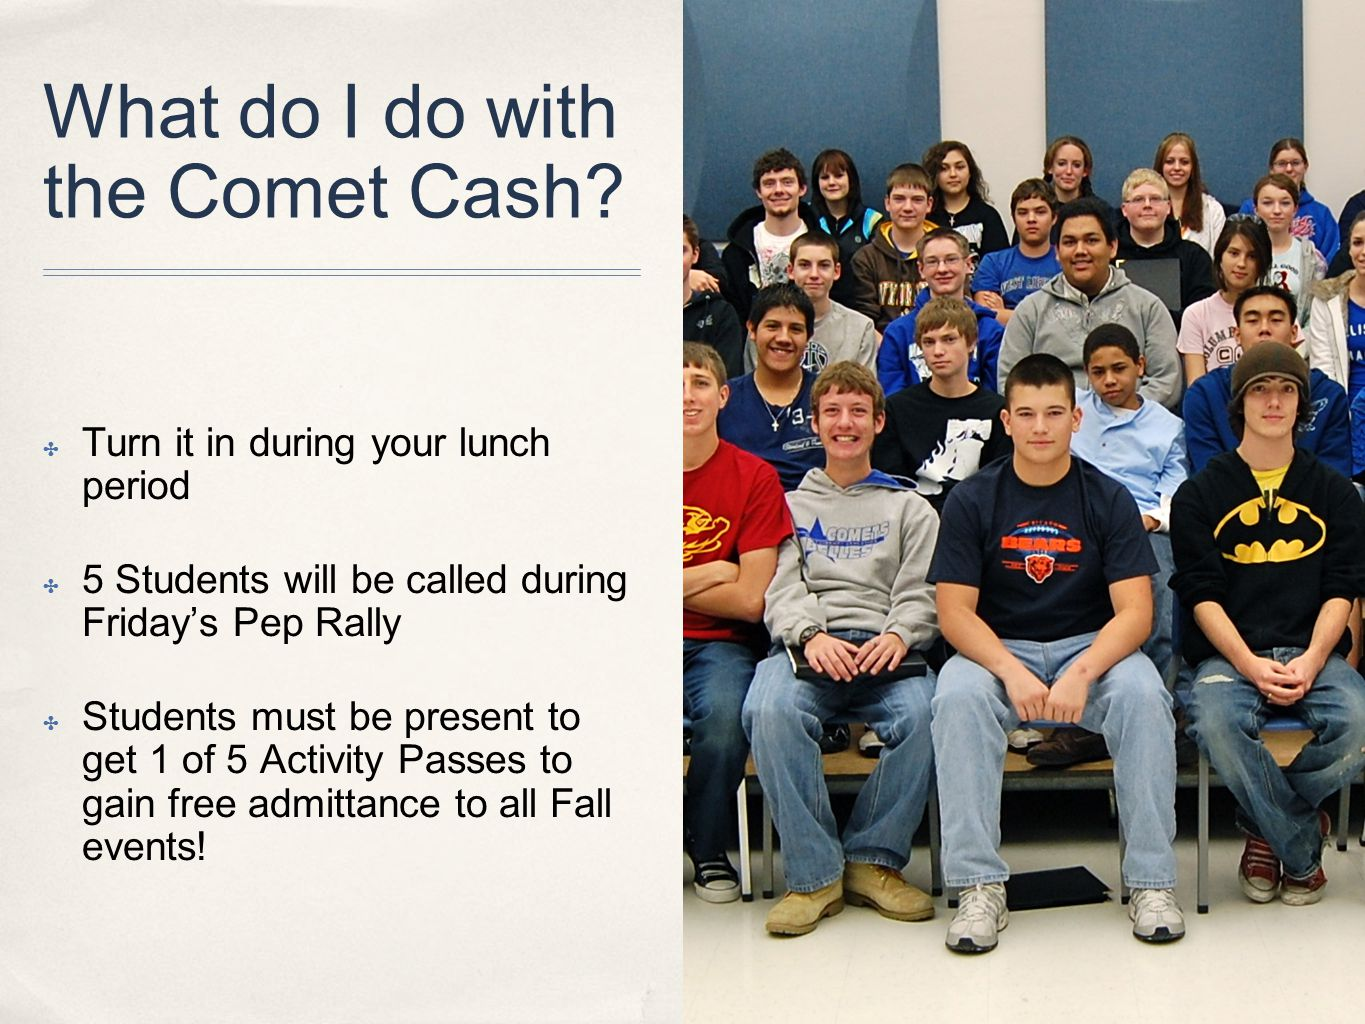 What do I do with the Comet Cash.